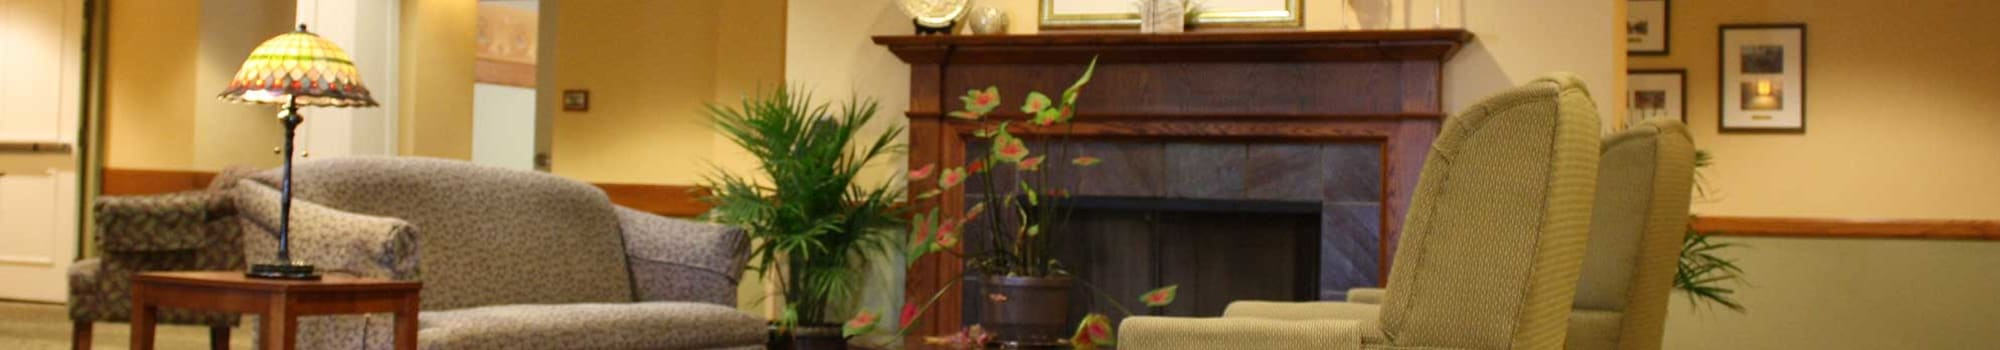 Senior living options in Bartlett, IL